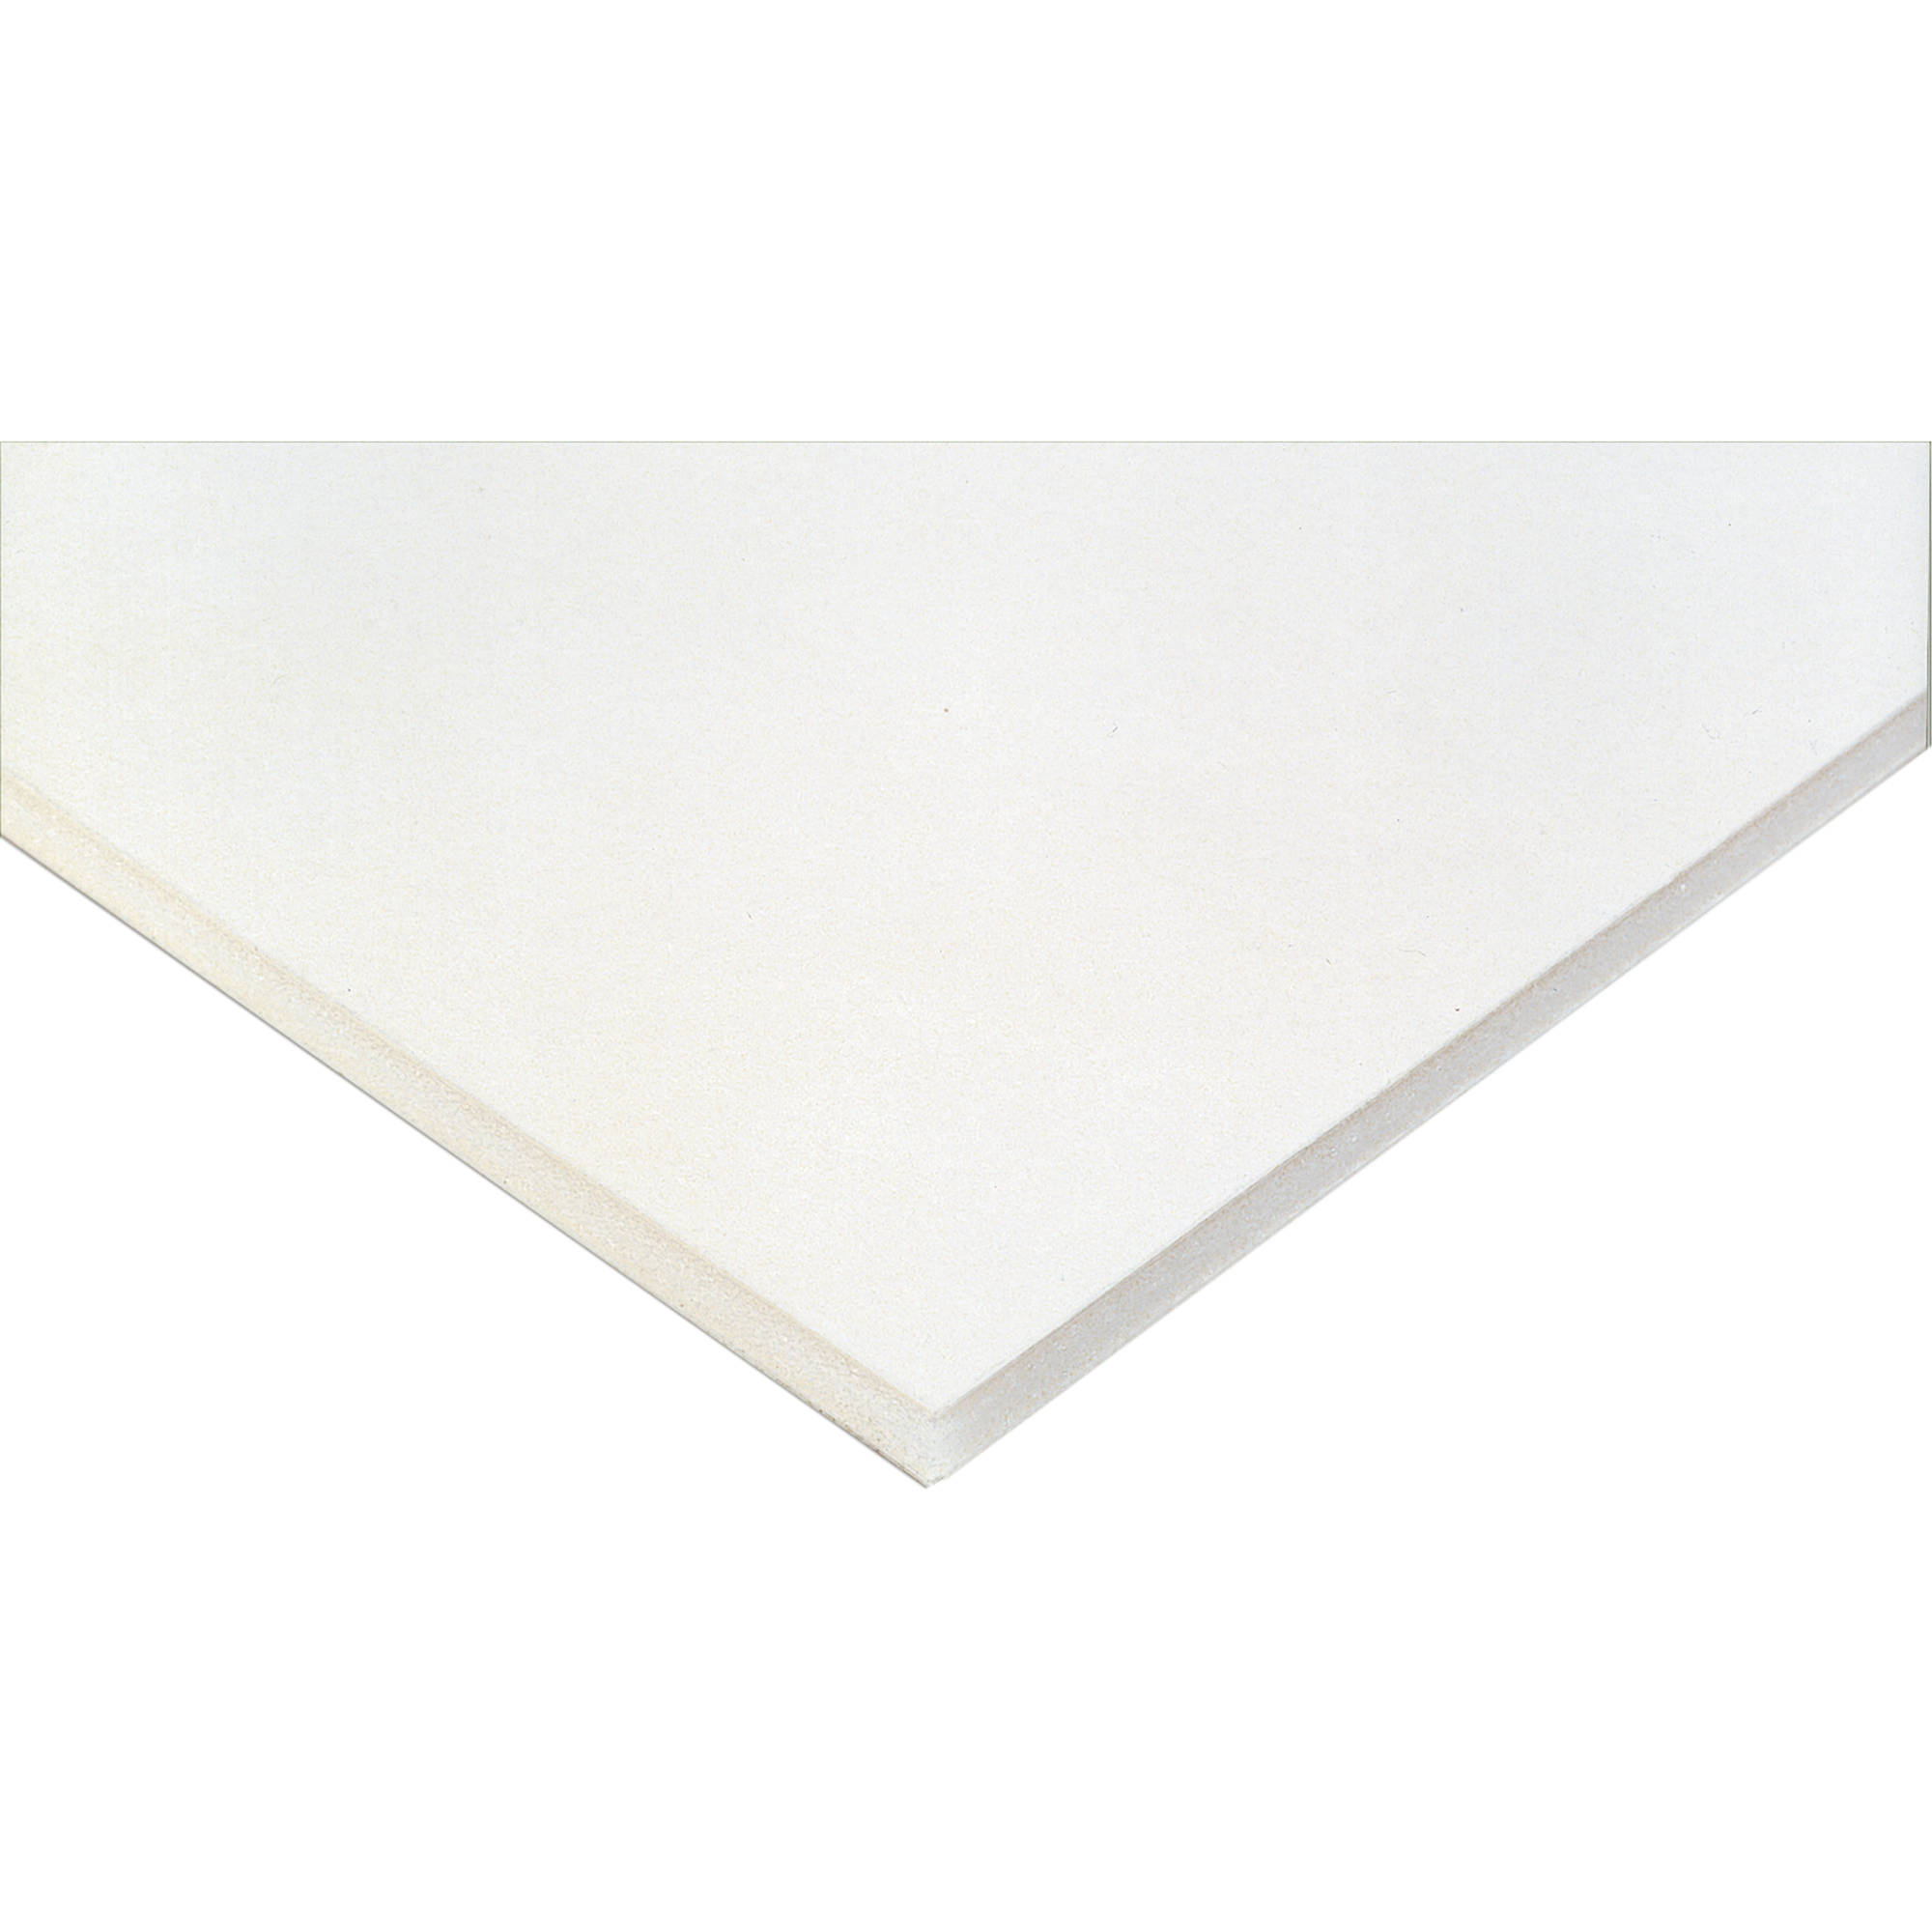 Nielsen Amp Bainbridge Clay Coated Foam Core Board 32